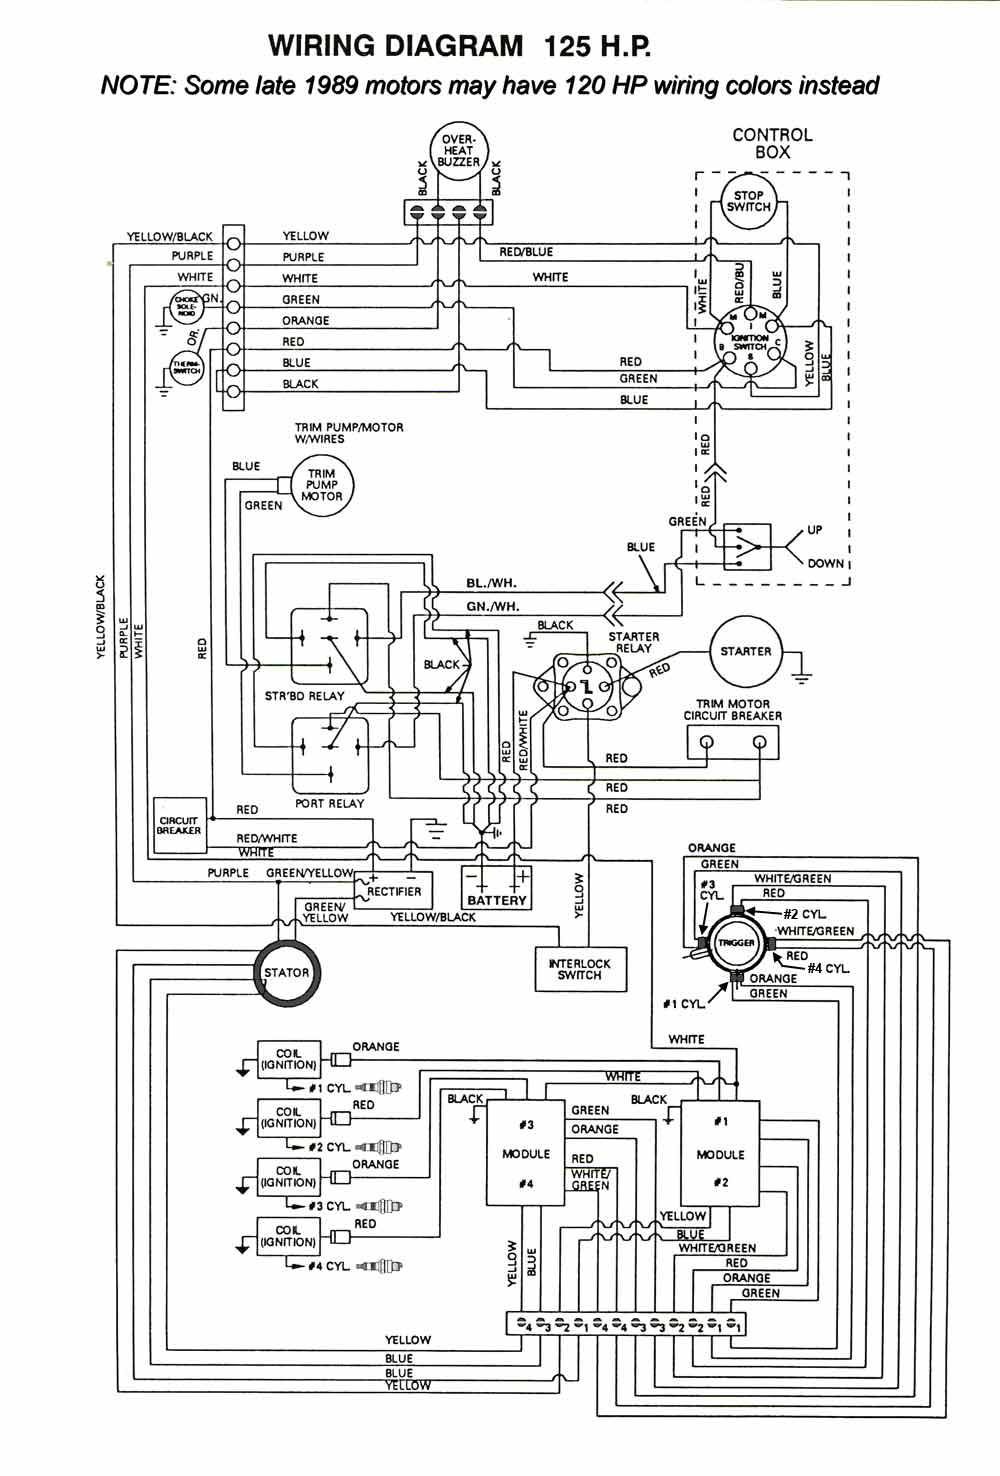 hight resolution of 125 hp wiring diagram wiring diagram blog ignition 4 cyl force wiring mercury marine ignition 4 cyl force wiring